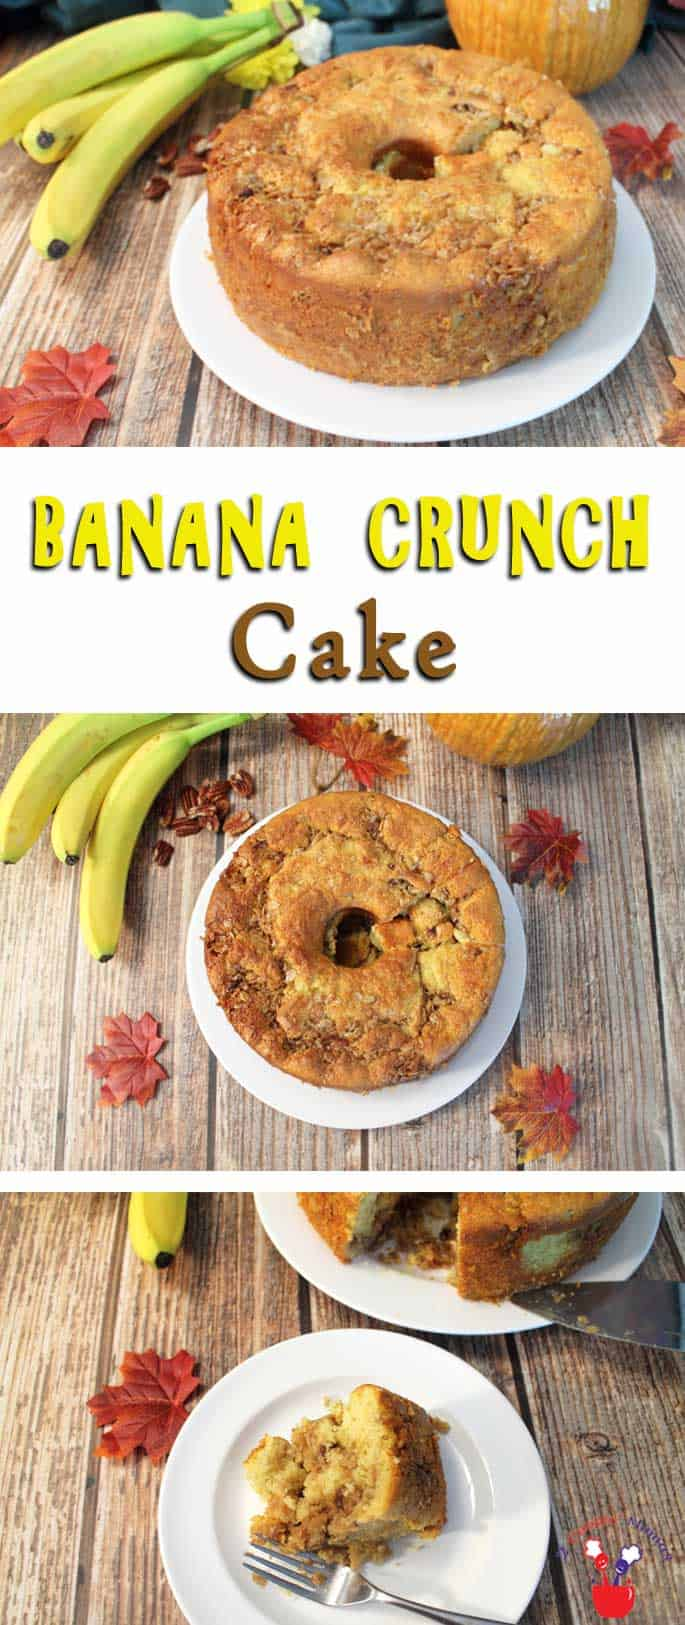 Banana Crunch Cake | 2 Cookin Mamas A super easy cake that goes together in minutes & comes out like it was made from scratch. This Banana Crunch Cake is moist, has an incredible banana flavor, and the most awesomely delicious coconut pecan filling.